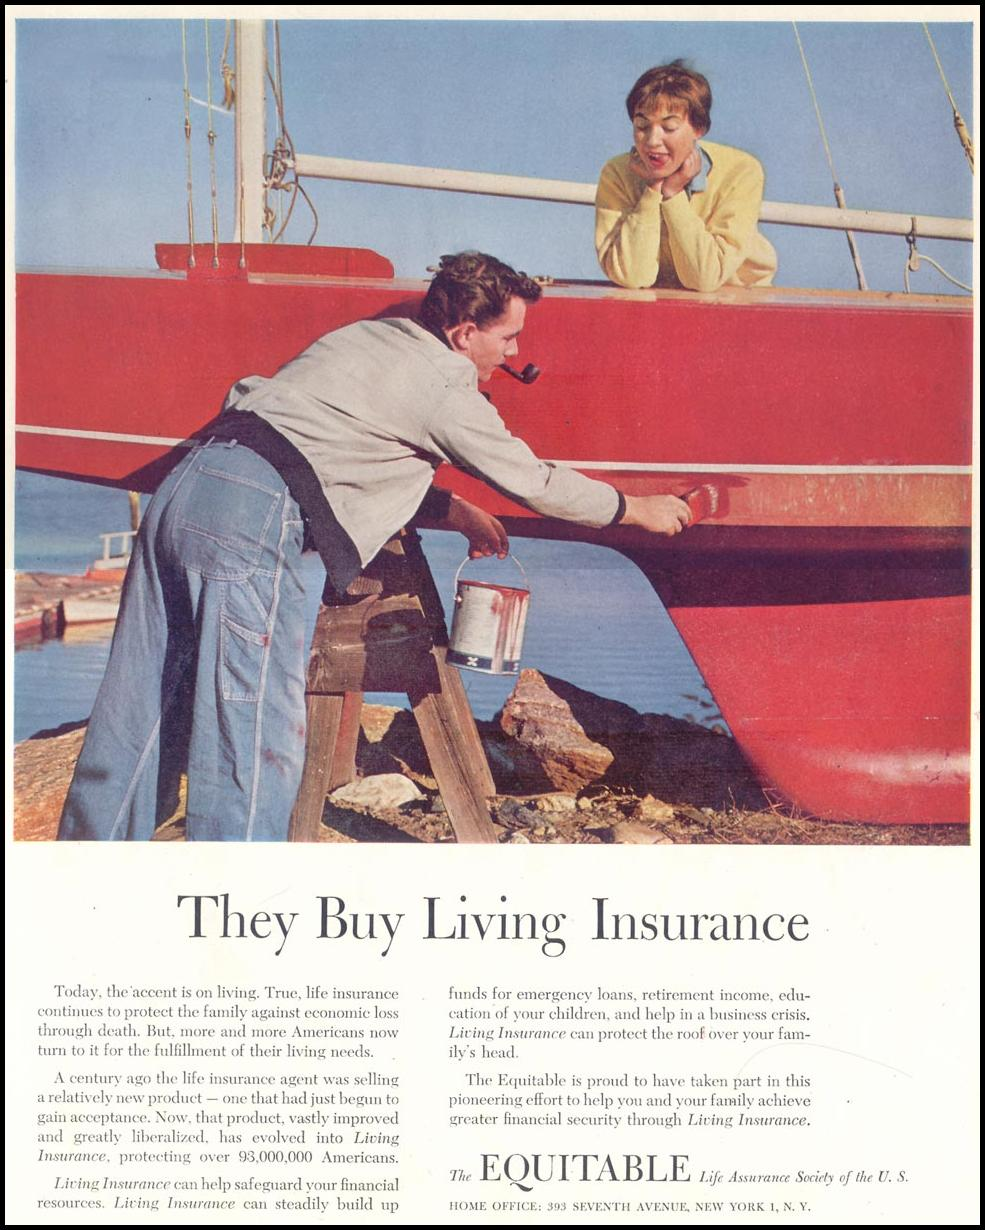 LIFE INSURANCE SATURDAY EVENING POST 03/26/1955 p. 53